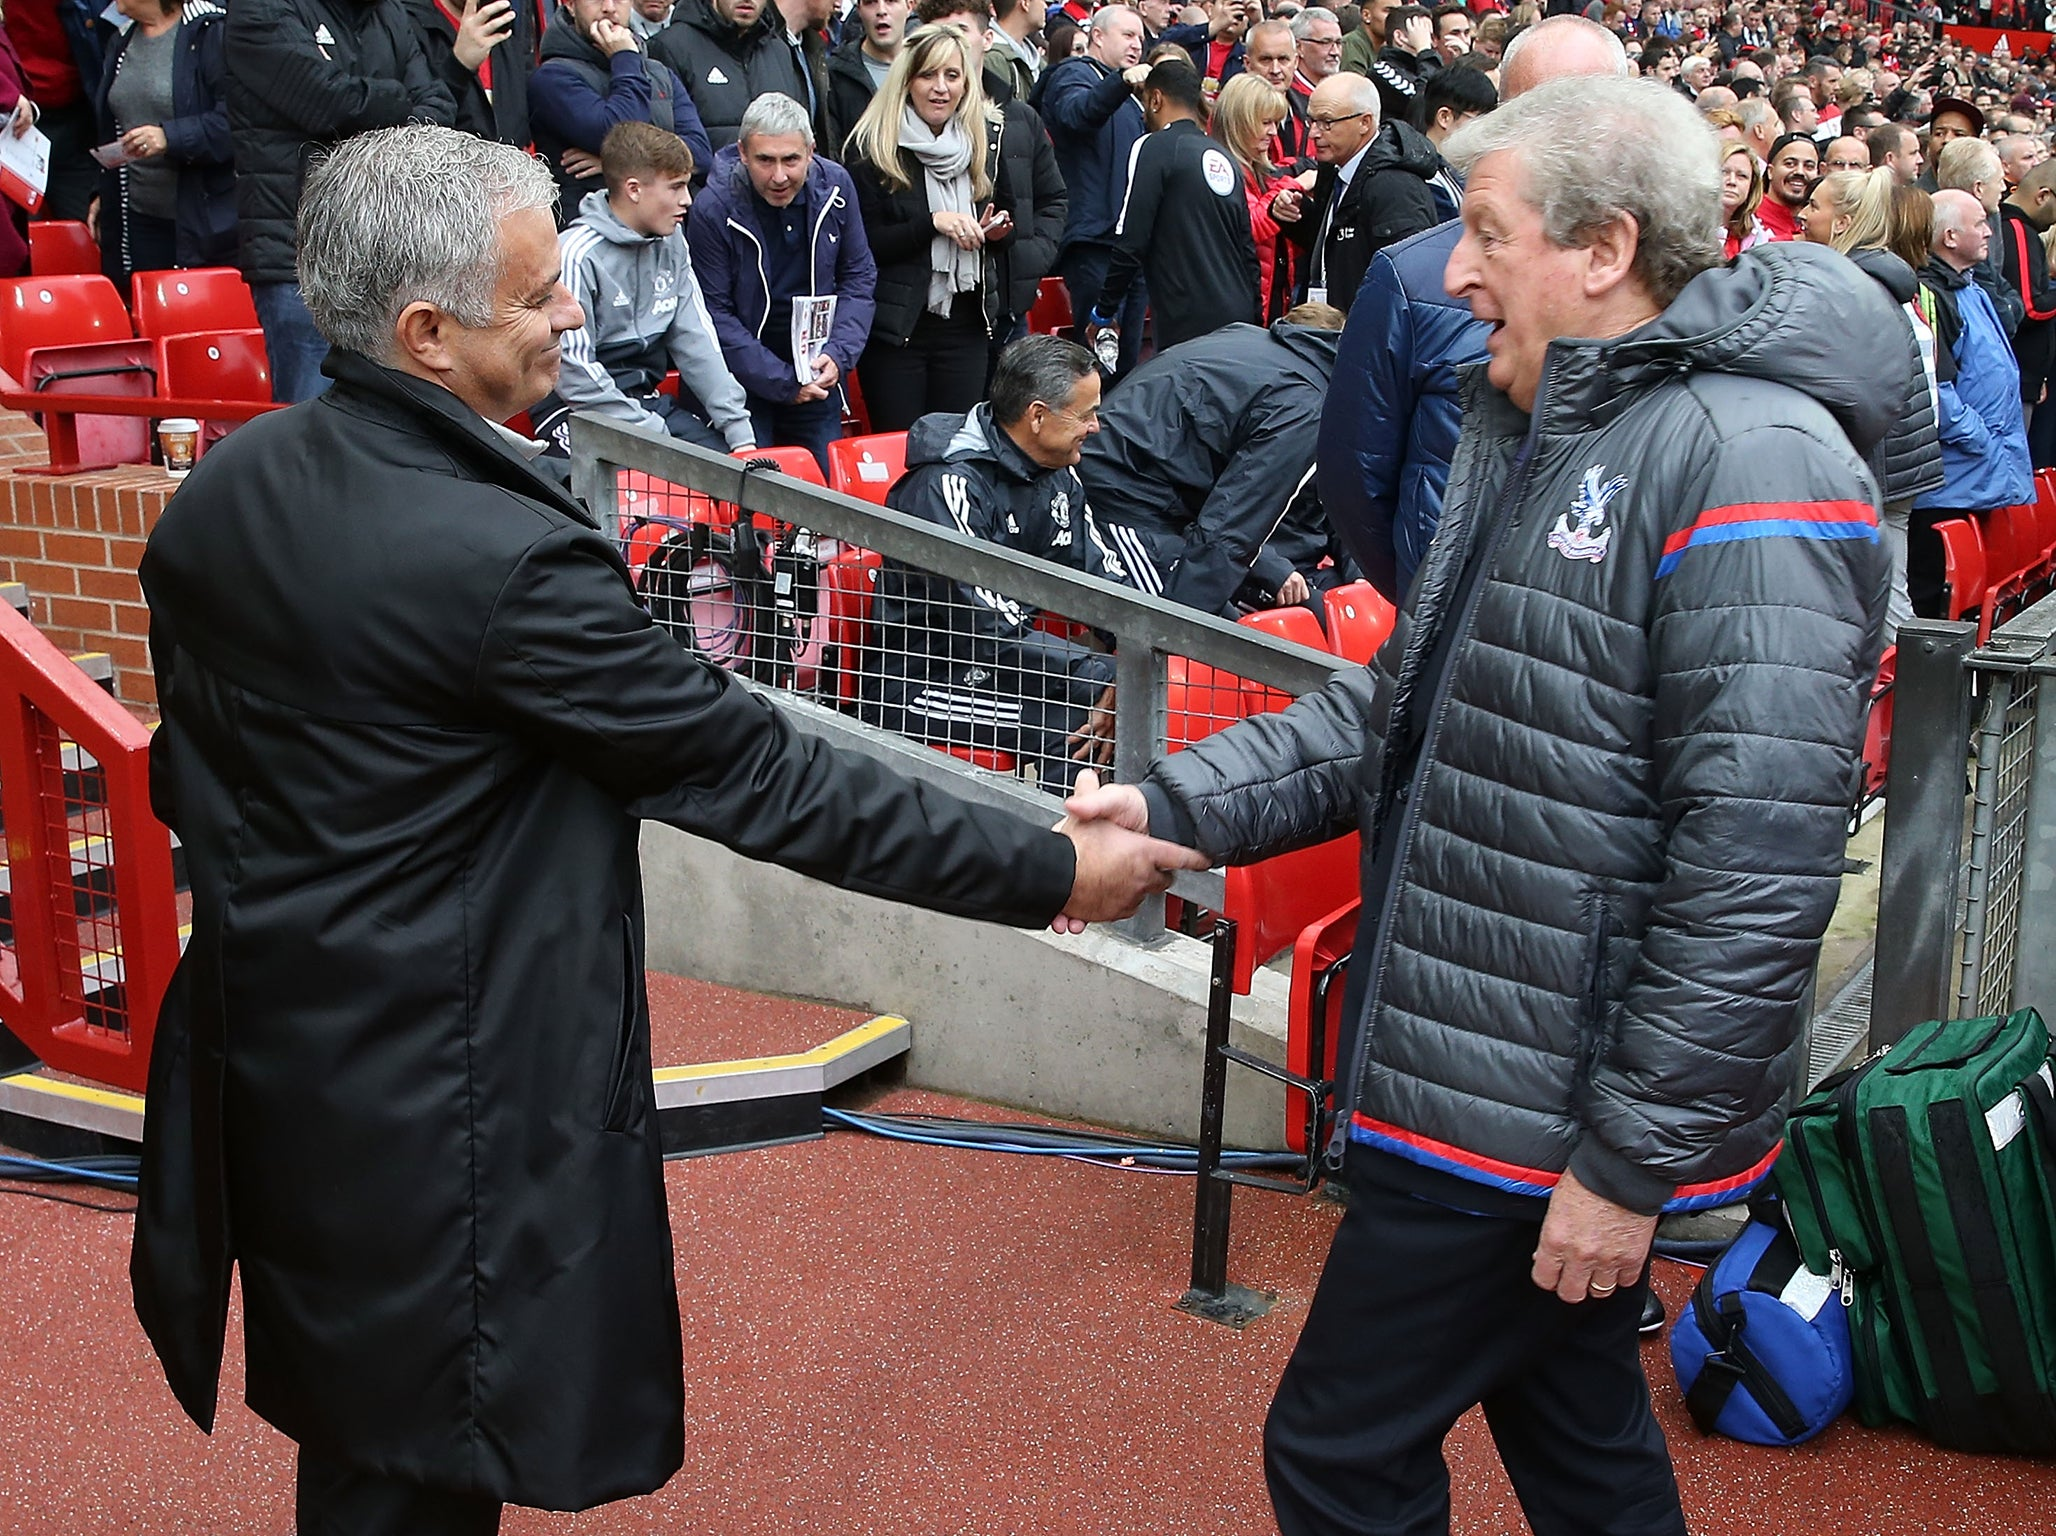 Crystal Palace vs Manchester United, Premier League: What time, where can I watch and what is the team news?